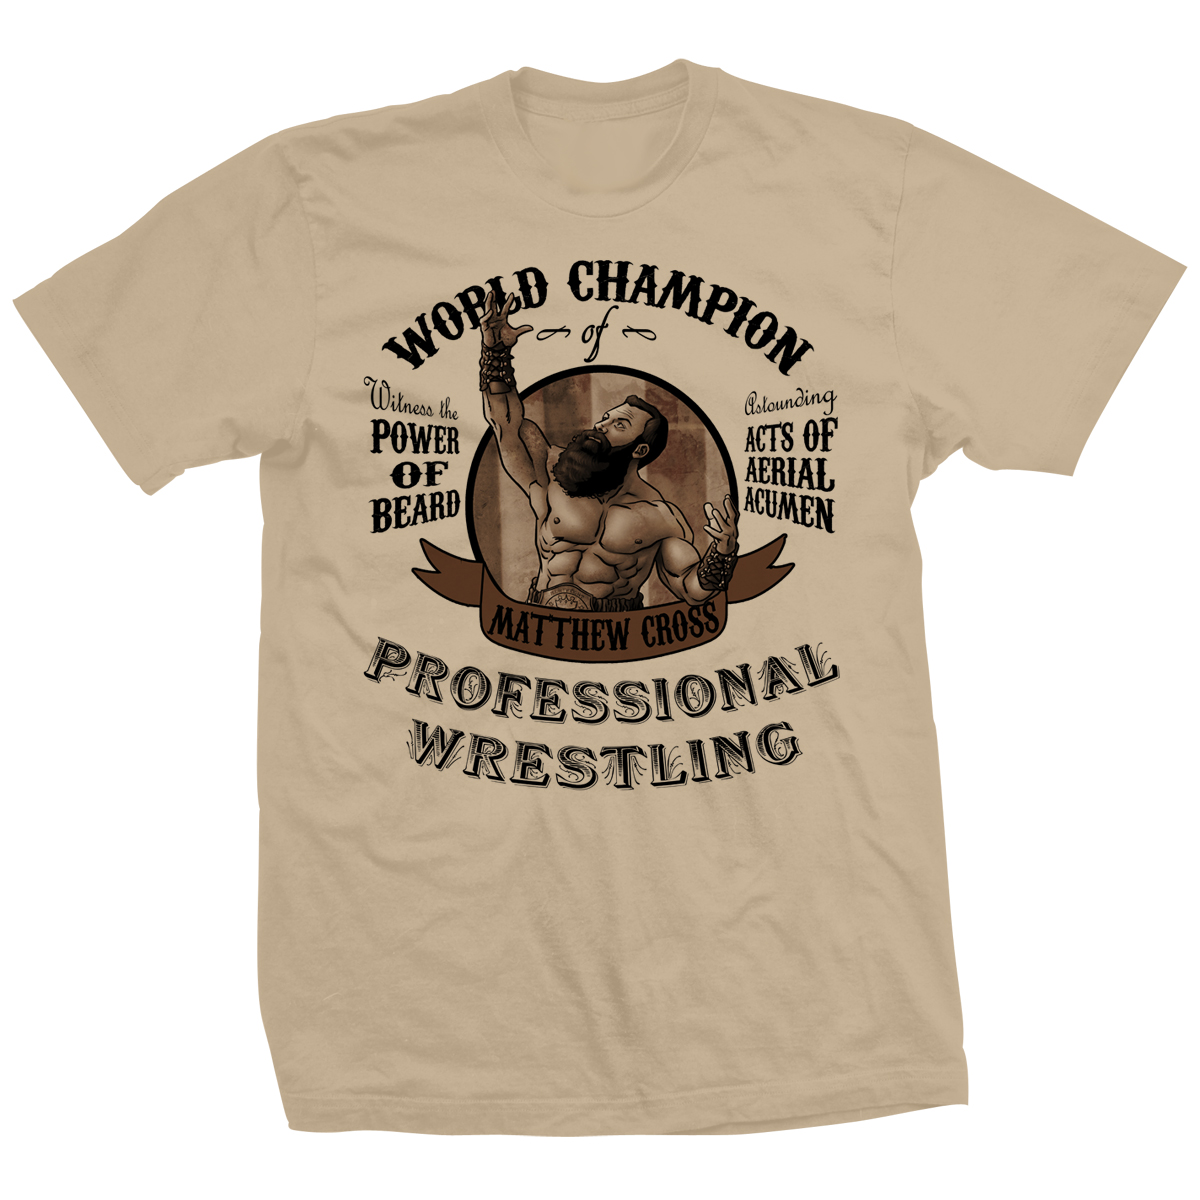 Matt Cross World Champion T-shirt